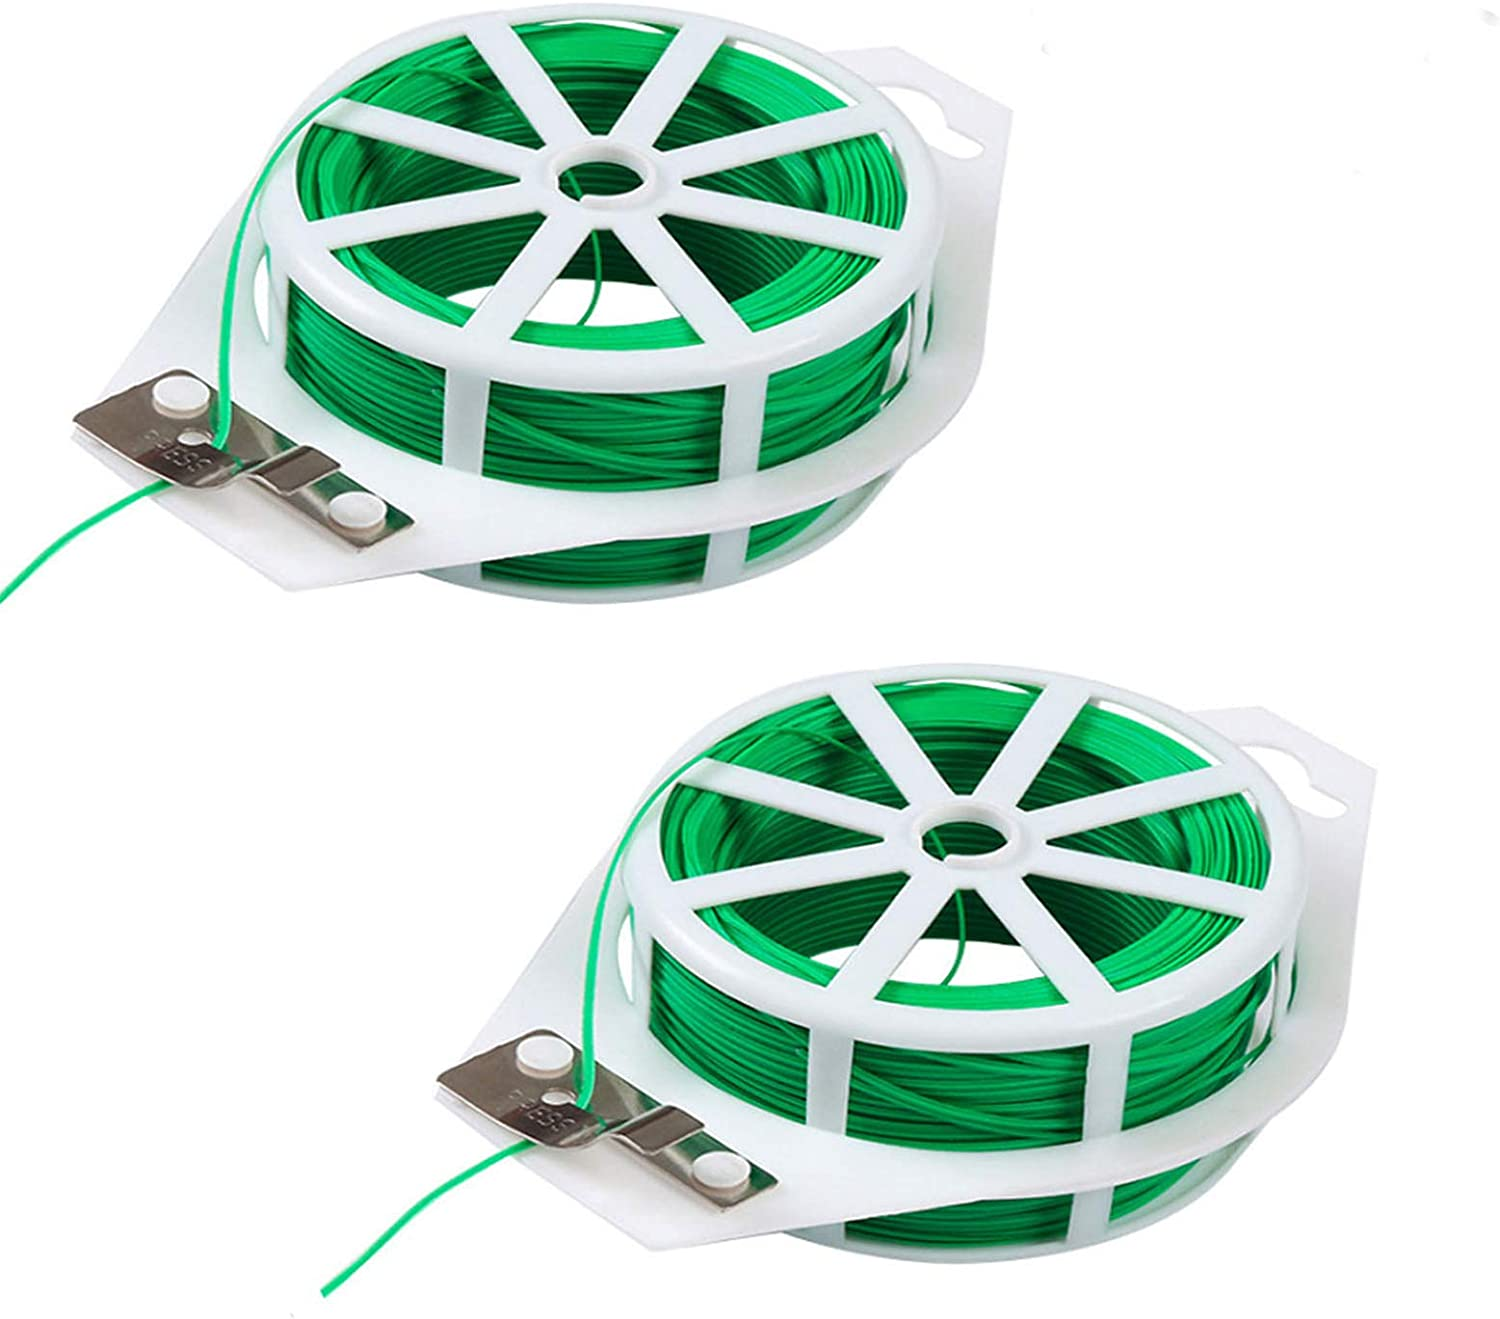 PUNCH 2-Pack 328ft (100m) Garden Tie Cord, Green Garden Twist Tie Support Wire with Cutter for Gardening and Office Organization, Home